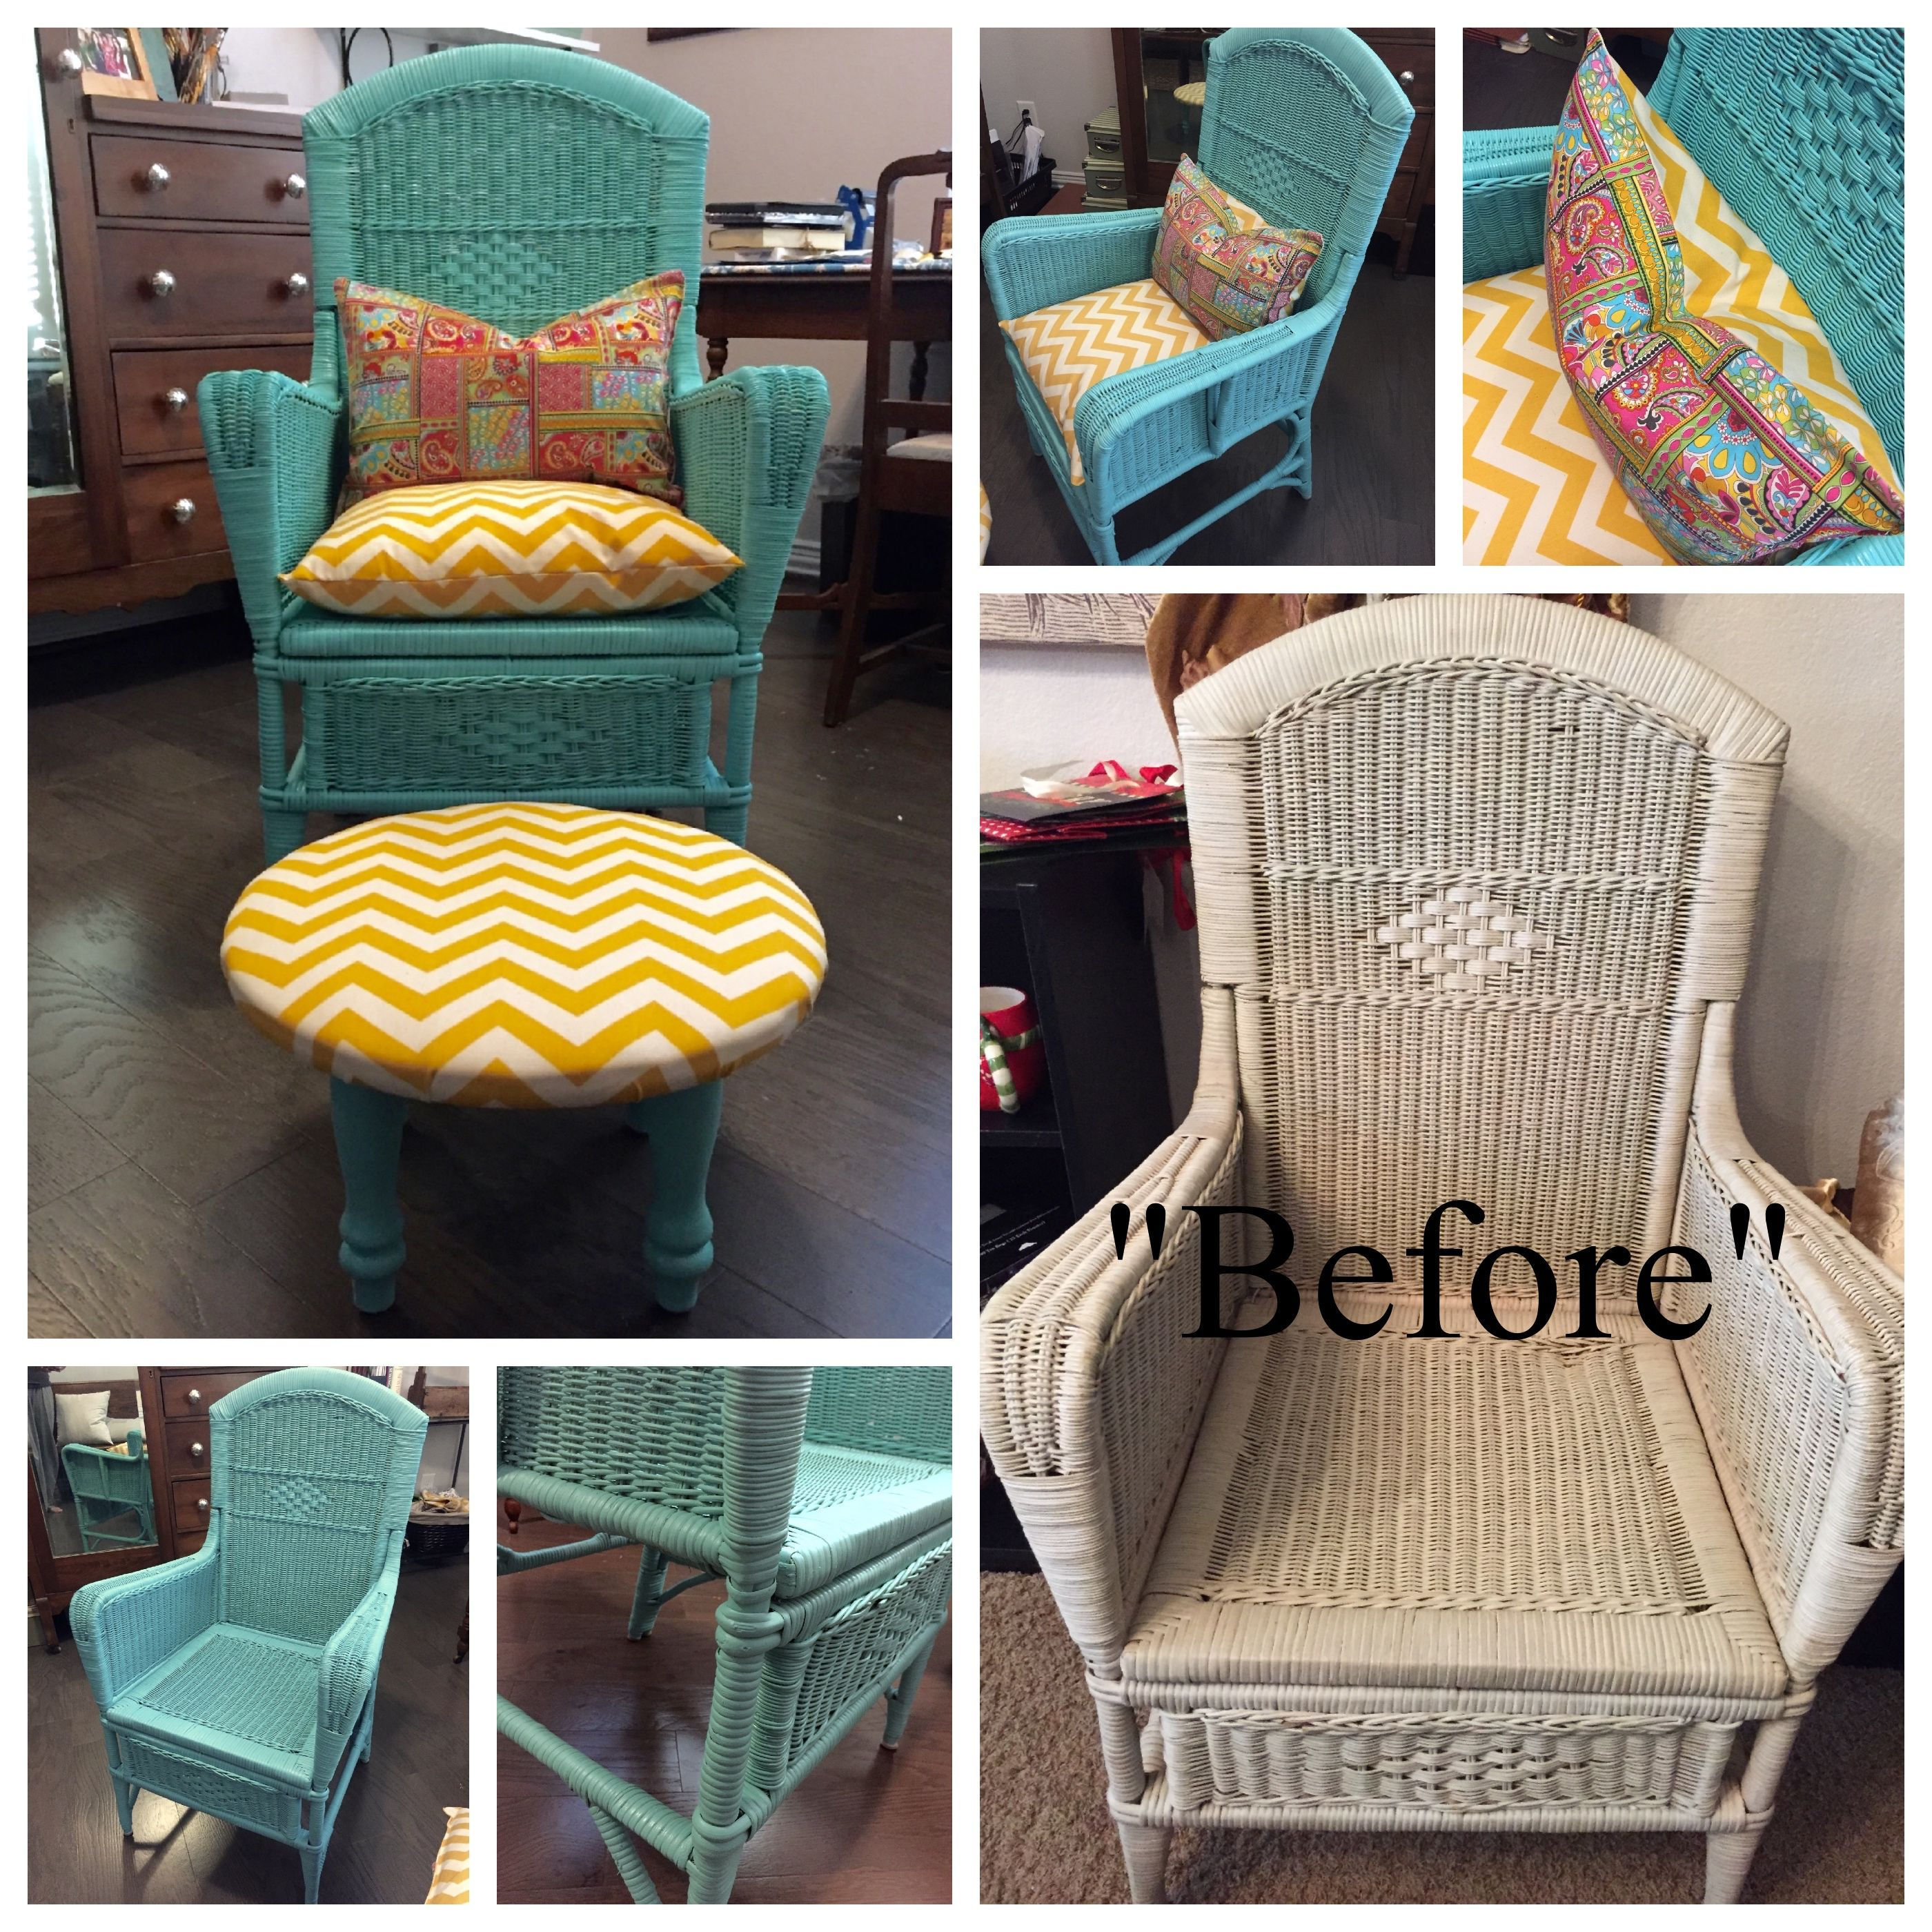 Found This Old Wicker Chair A Couple Of Years Ago At A Garage Sale. I Think  I Paid $3 For It! I Always Thought It Would Be Fun In A Bright Color.